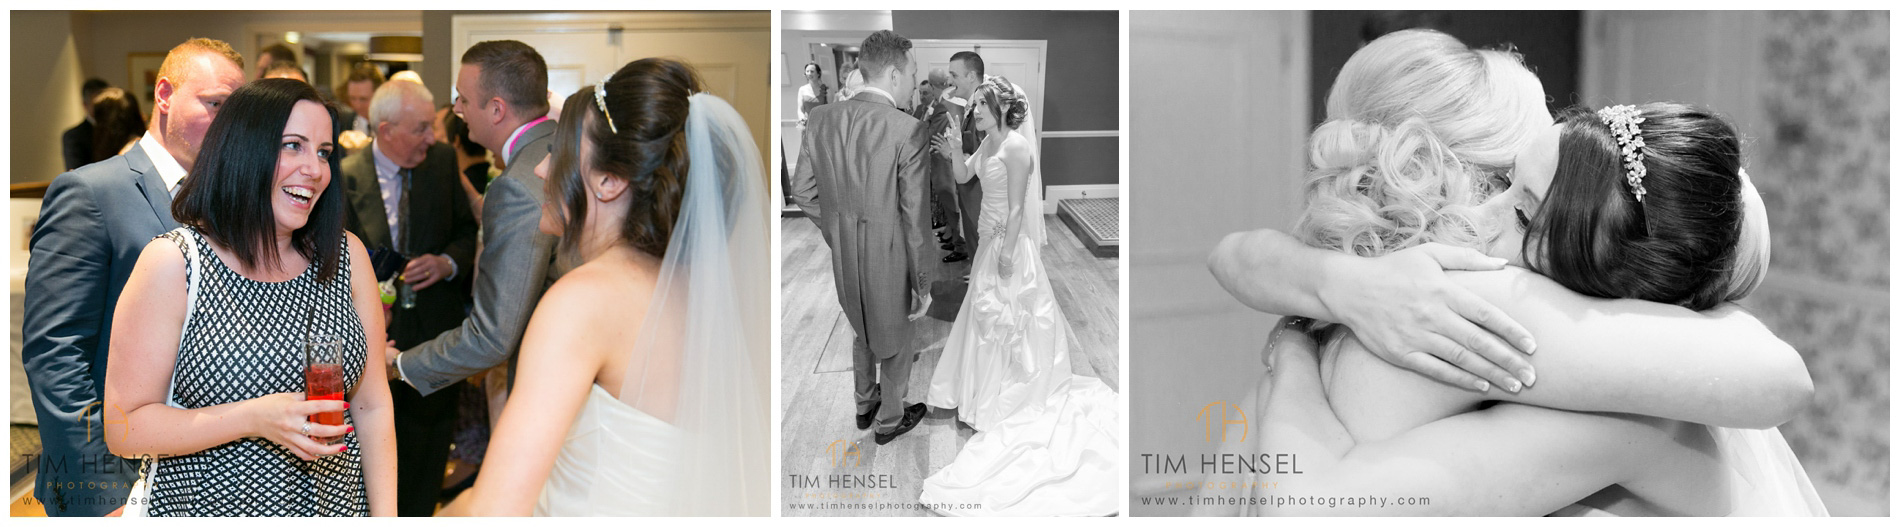 Natural wedding photography in Cheshire